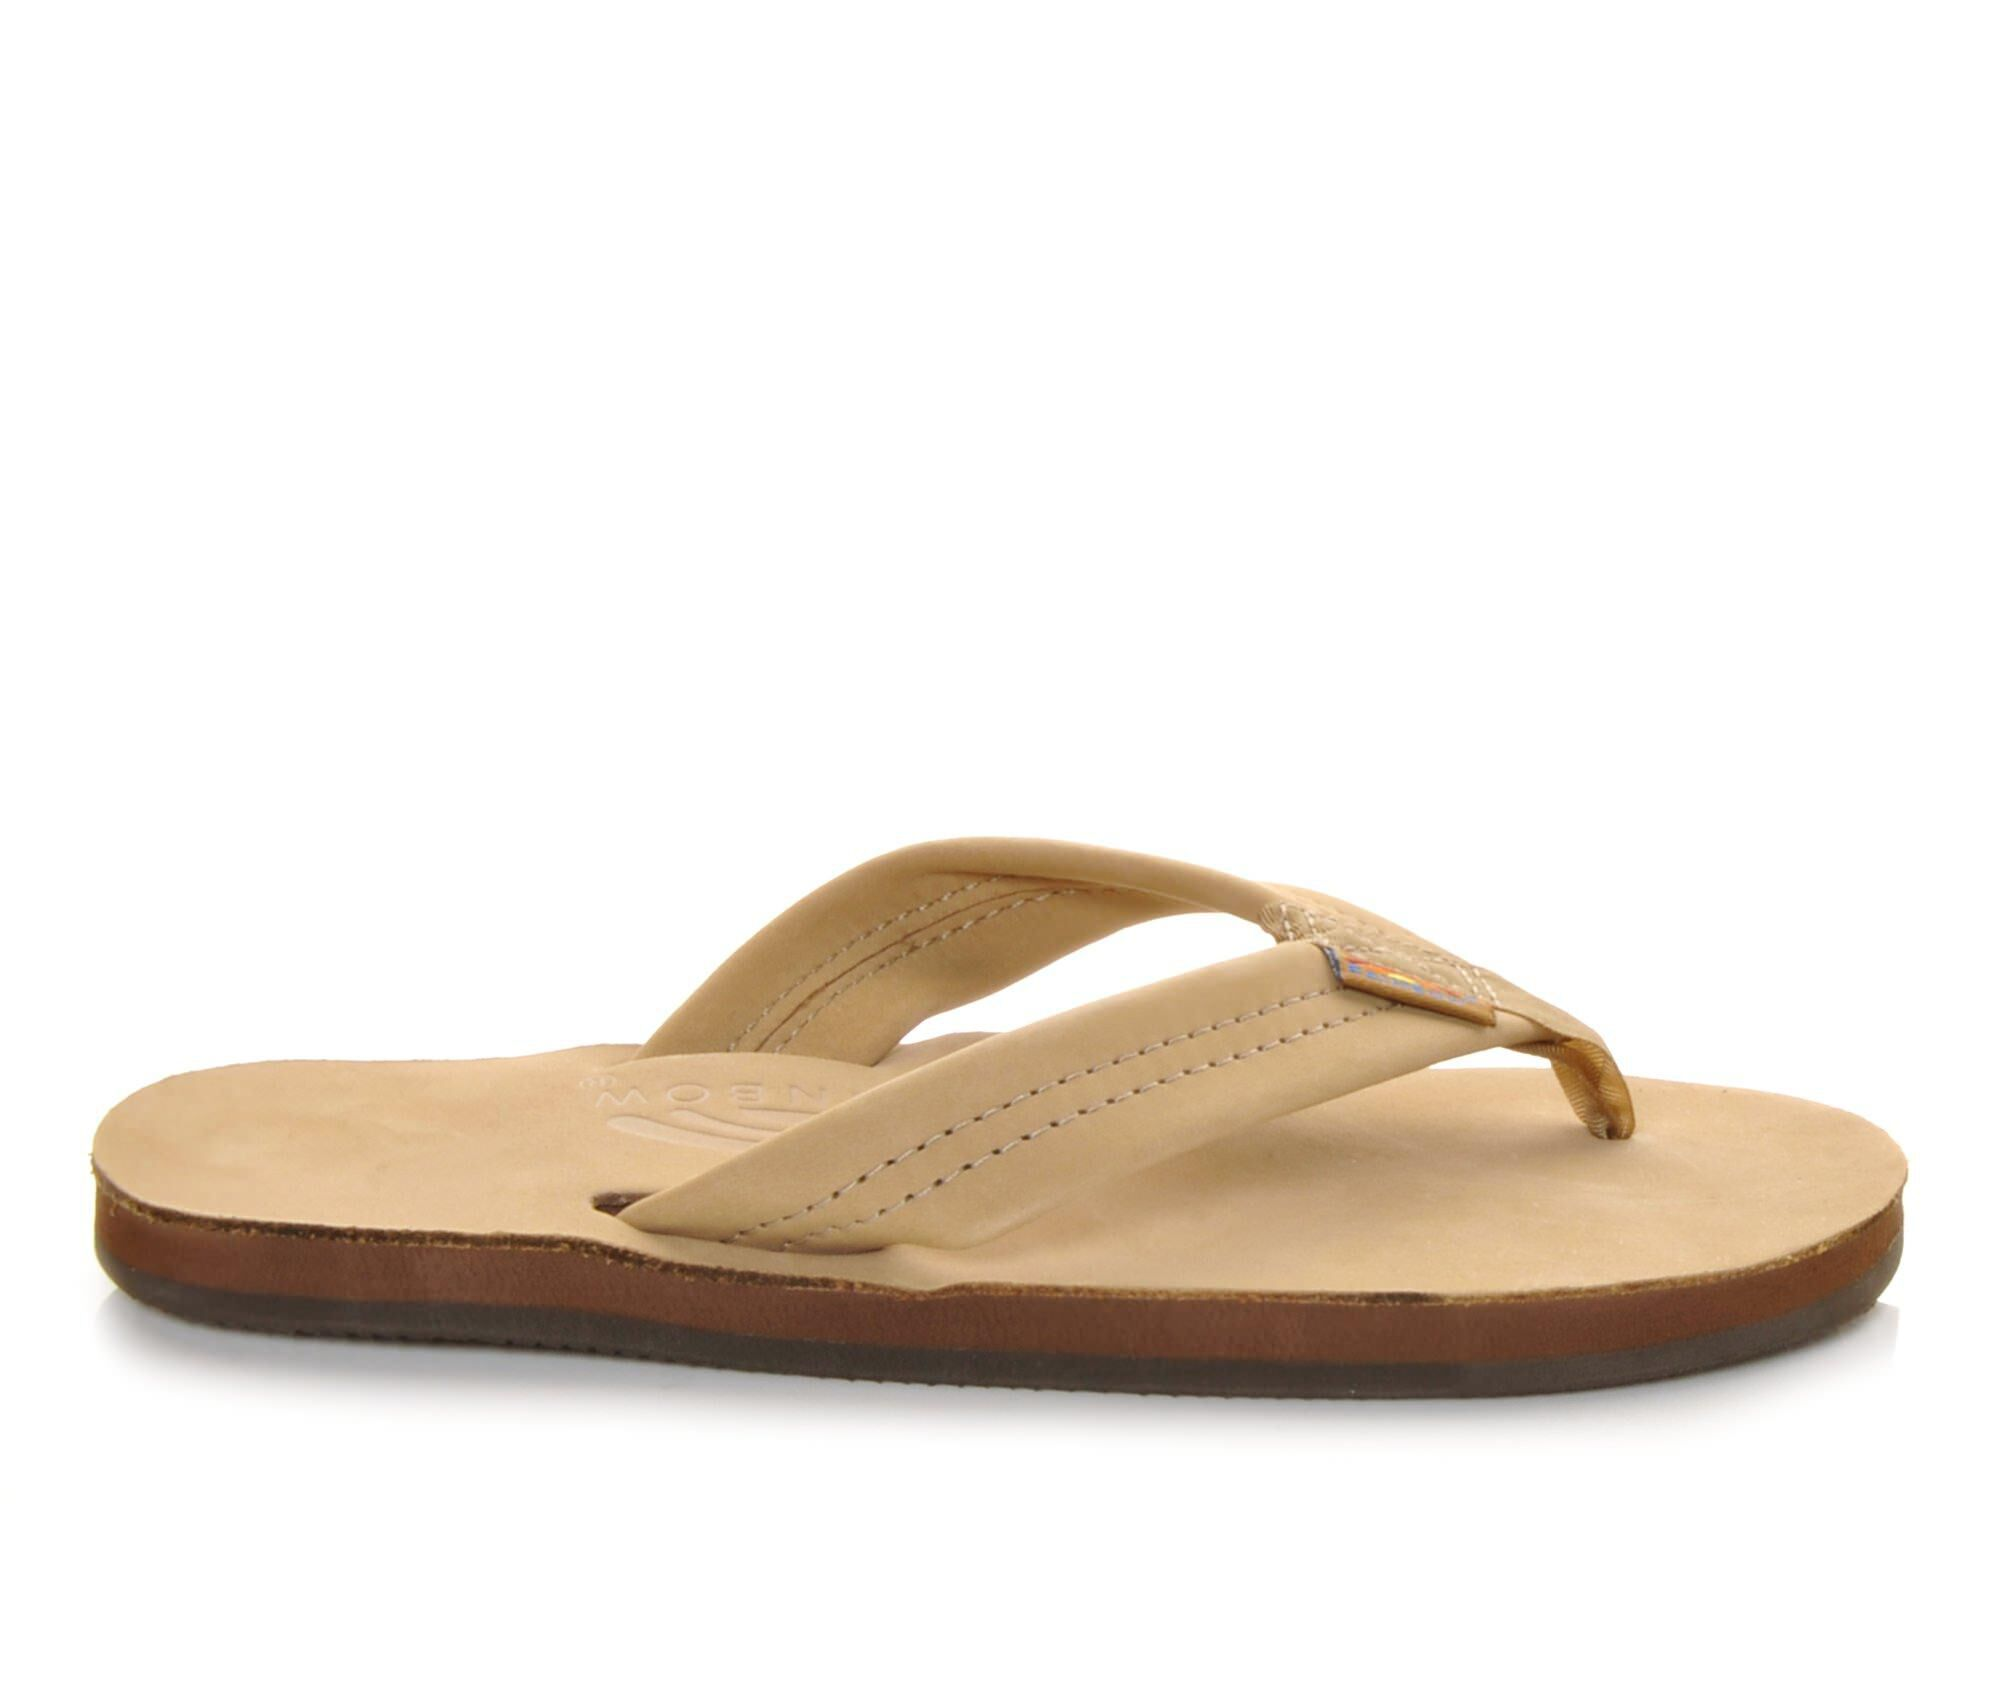 Women's Rainbow Sandals Single Layer Premier Leather -301ALTS Flip-Flops Sierra Brown